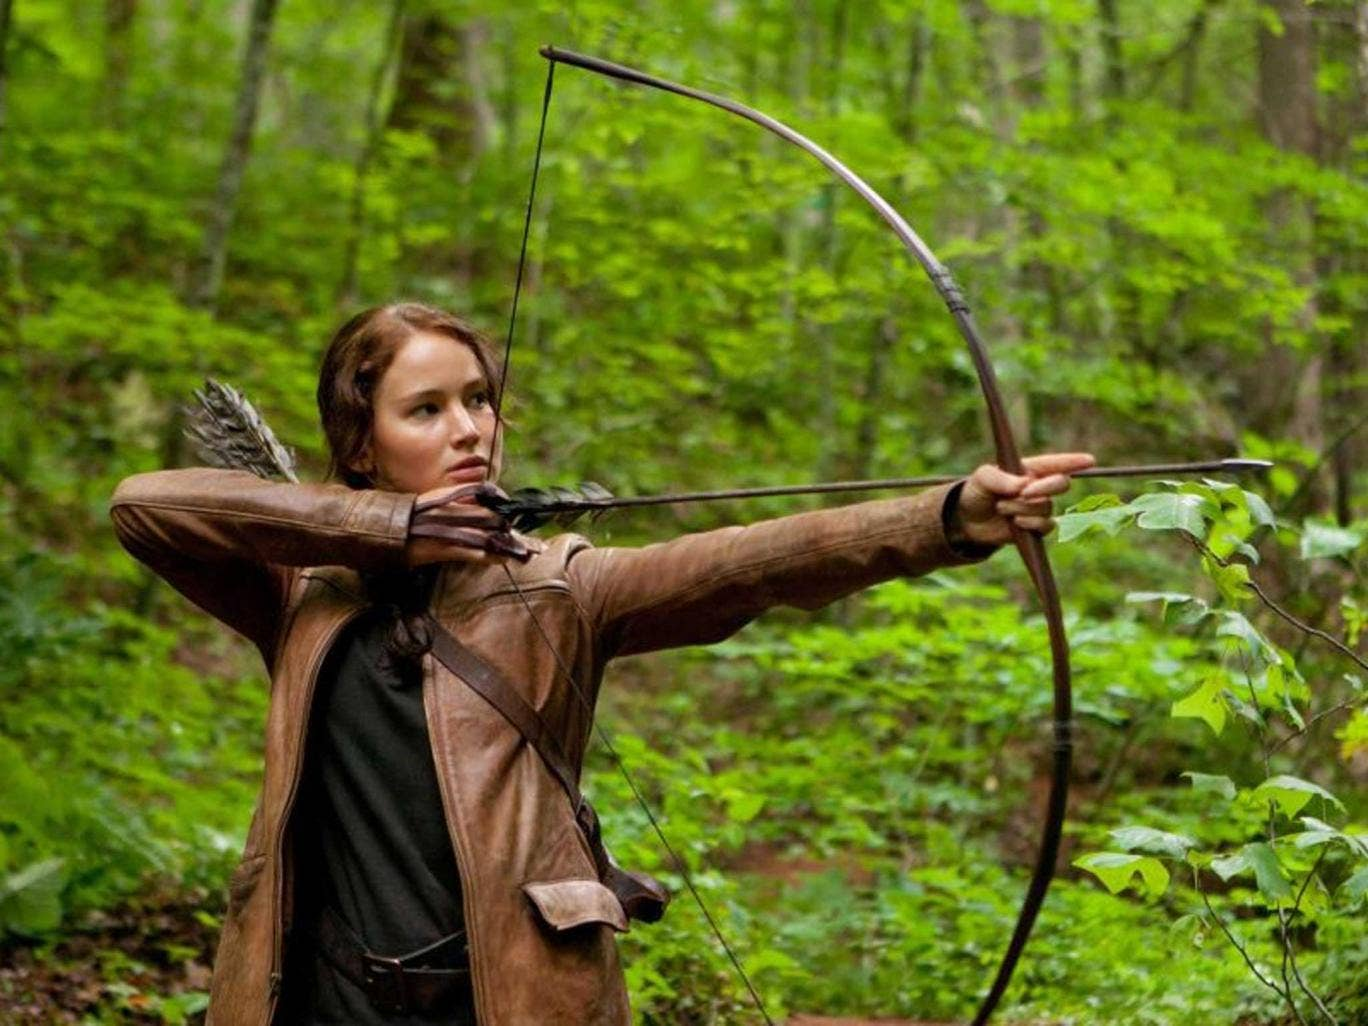 Jennifer Lawrence as Katniss Everdeen in The Hunger Games in one of few female protagonists in Hollywood